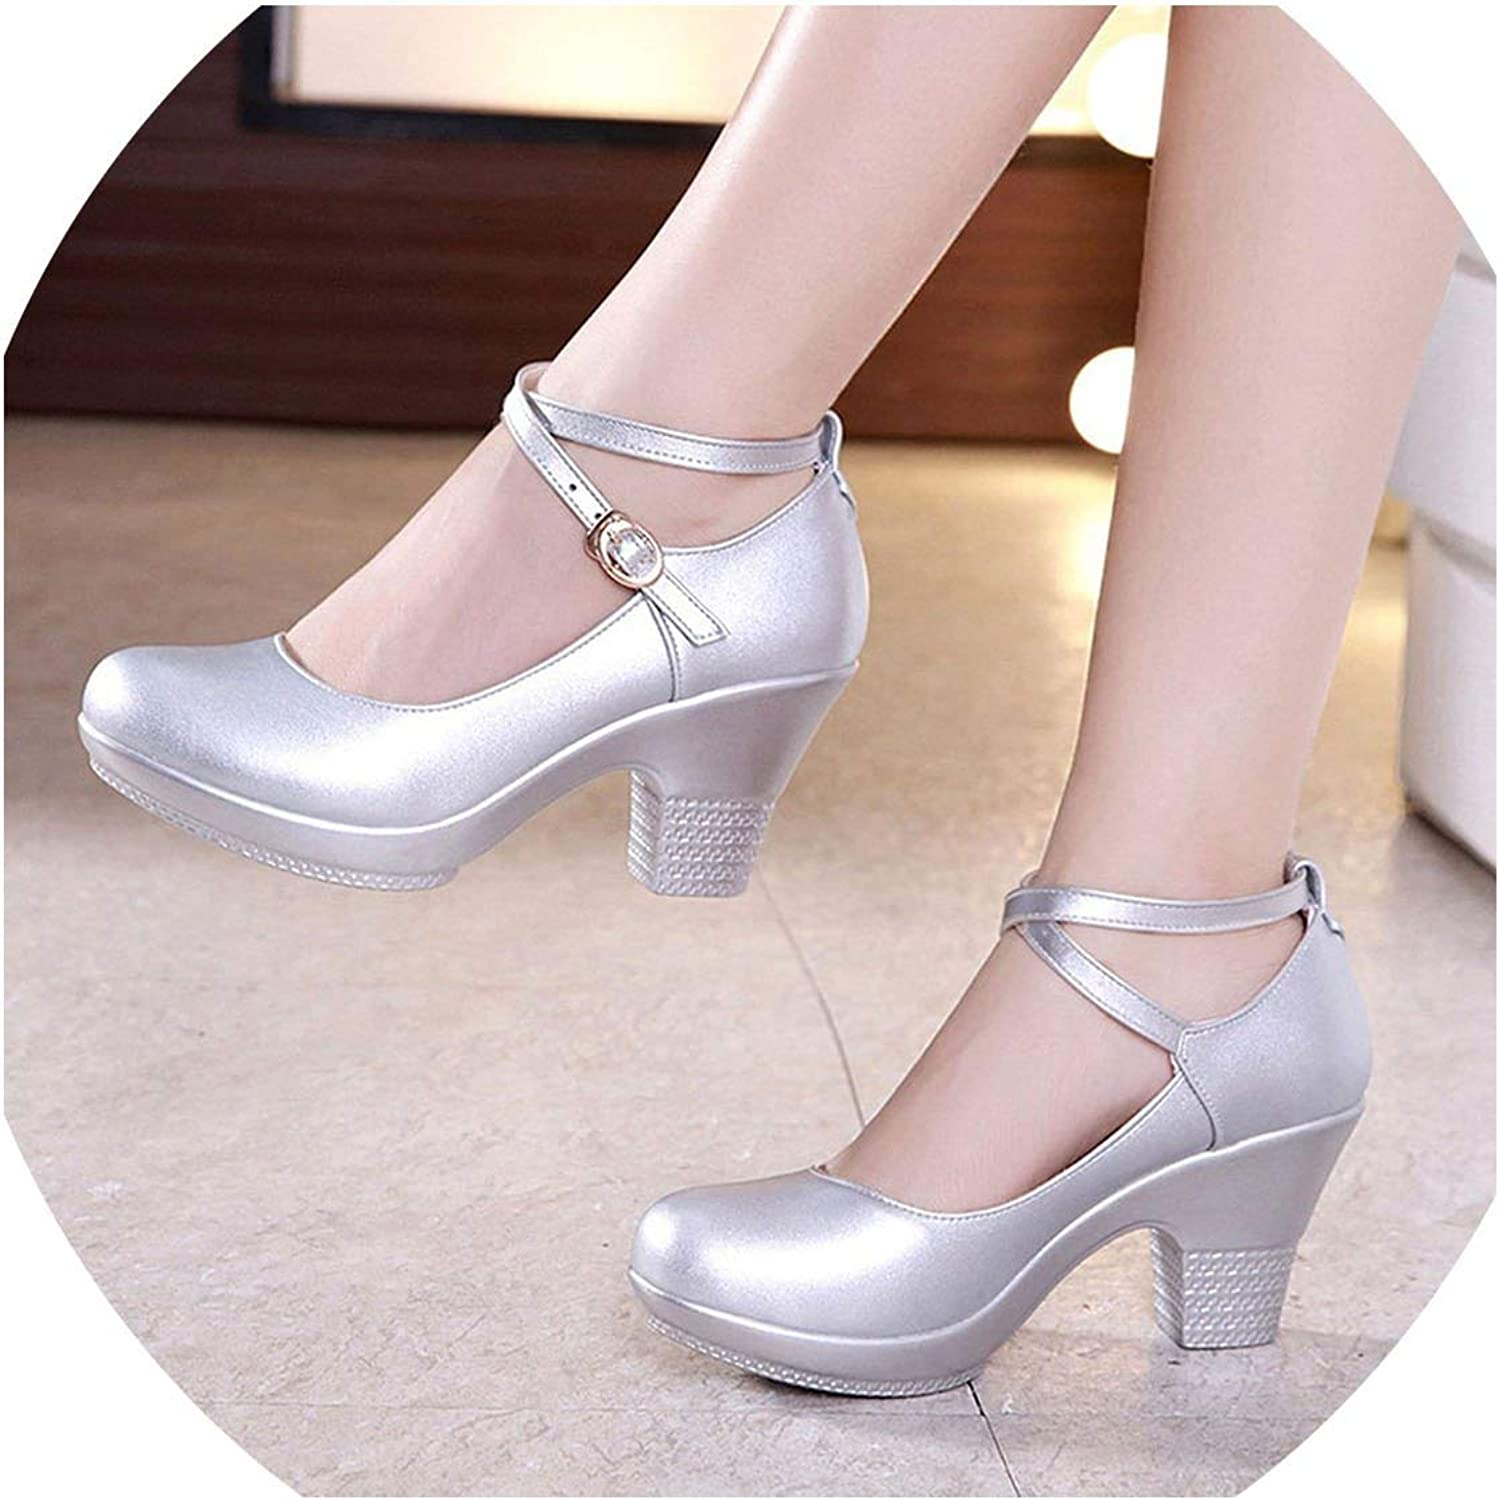 Pleasantlyday Women Pumps with High Heels Dancing Platform Genuine Leather